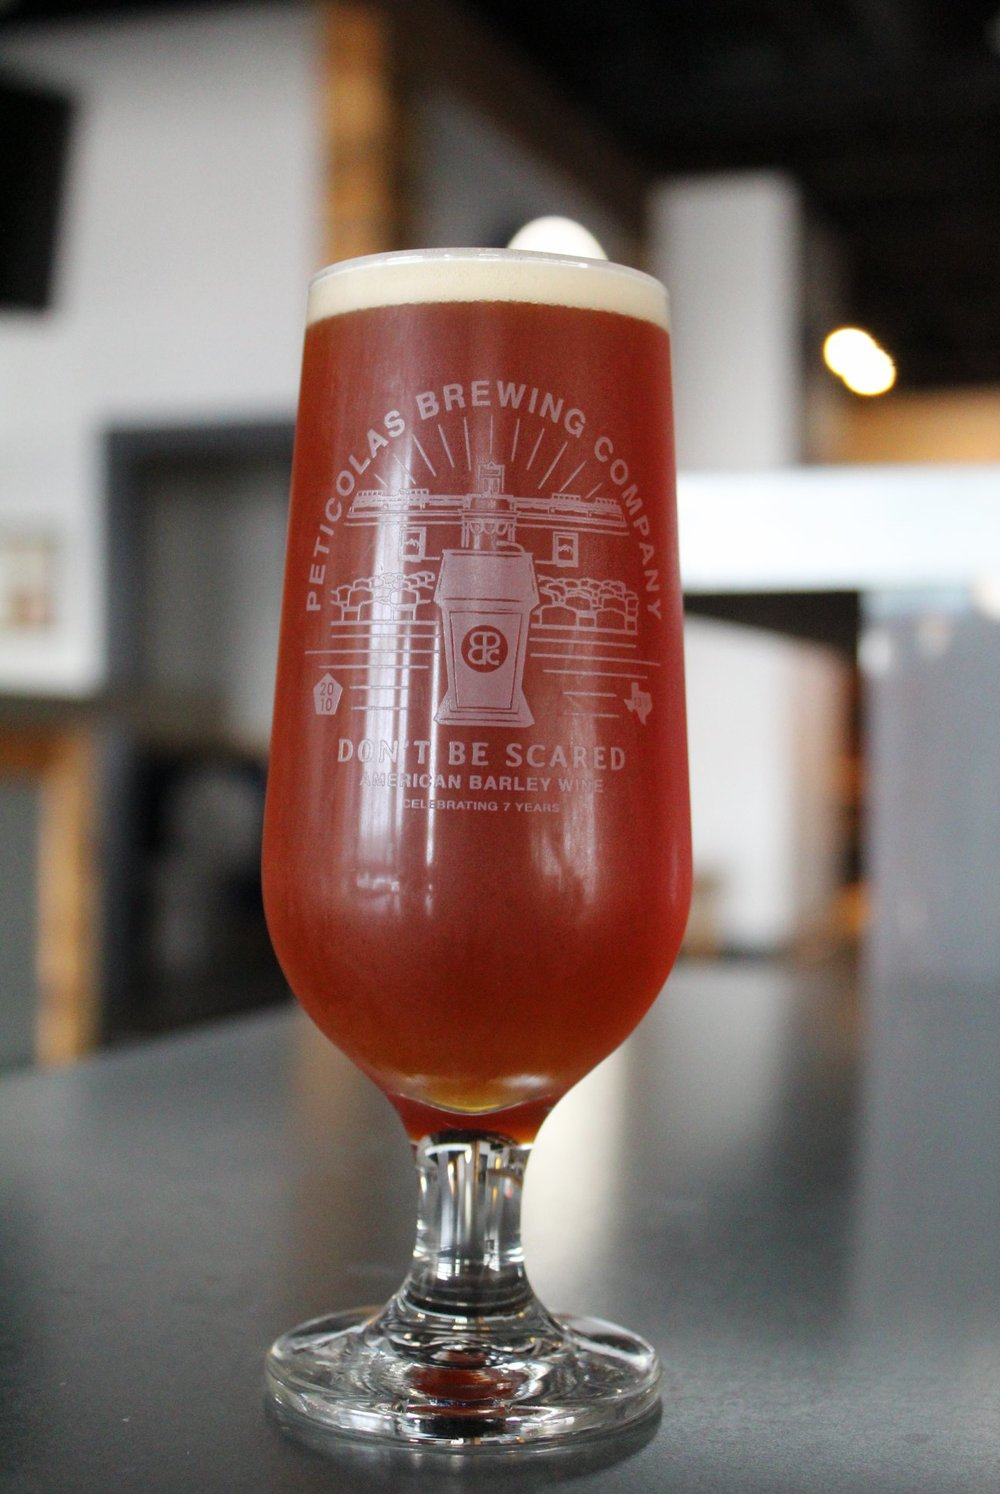 Don't Be Scared   Peticolas Brewing - Peticolas just celebrated their 7th anniversary and this barleywine was their gift to Dallas. It's barleywine season, and if there's any place to trust to get it right, it's Michael Peticolas' operation in the Design District. Head to the taproom for this limited release and remember: It might check in at 13% ABV and >100 IBU, but don't be scared.